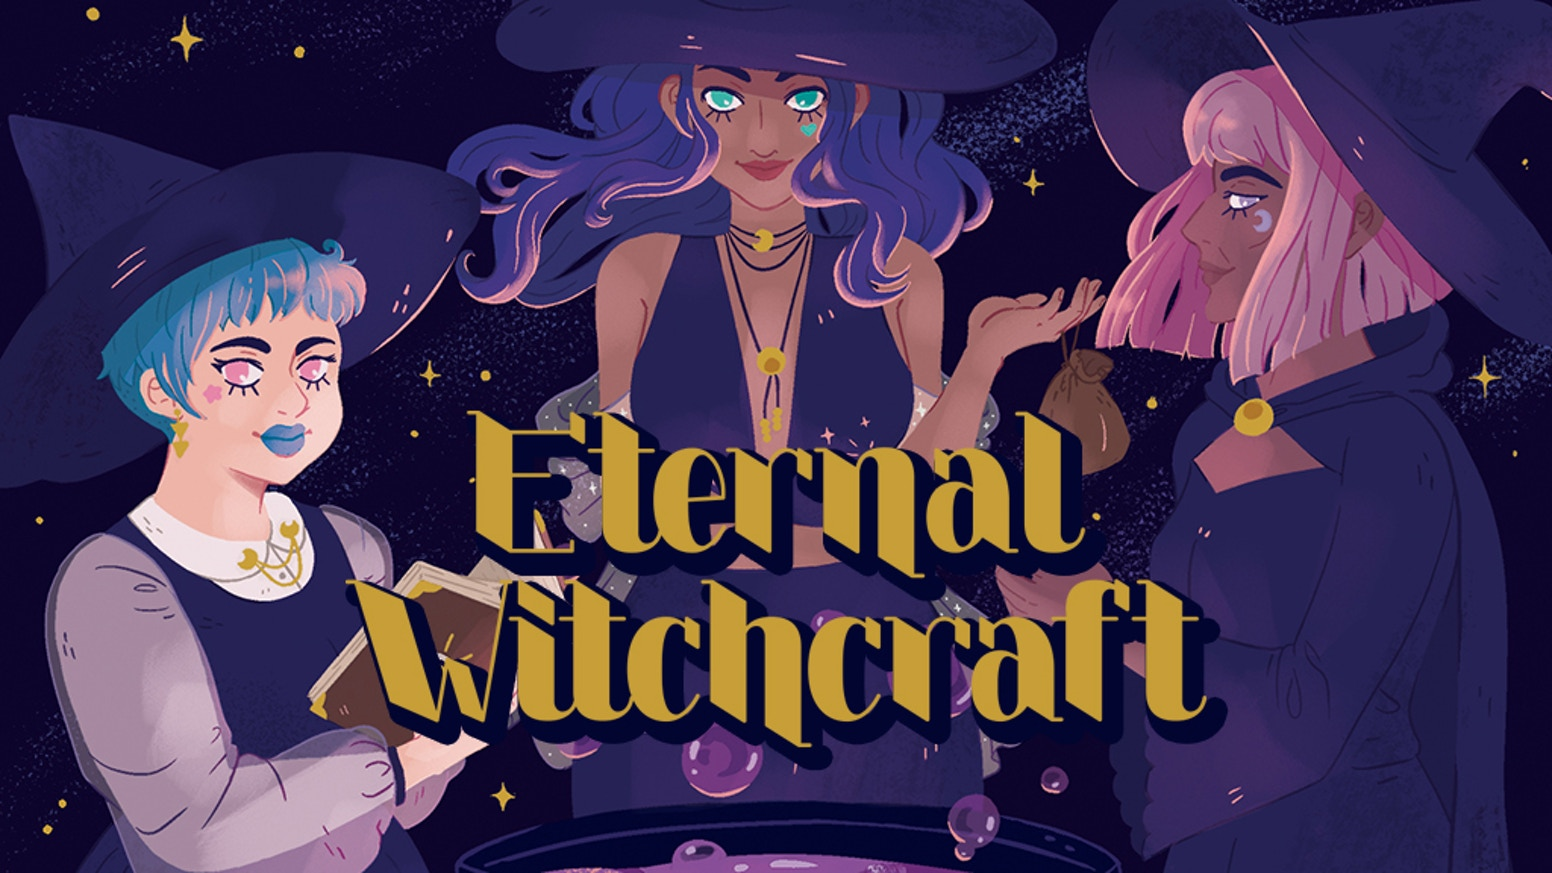 Eternal Witchcraft is a spellbook/anthology of witchy instructional comics for Crones and Aspiring Crones alike.